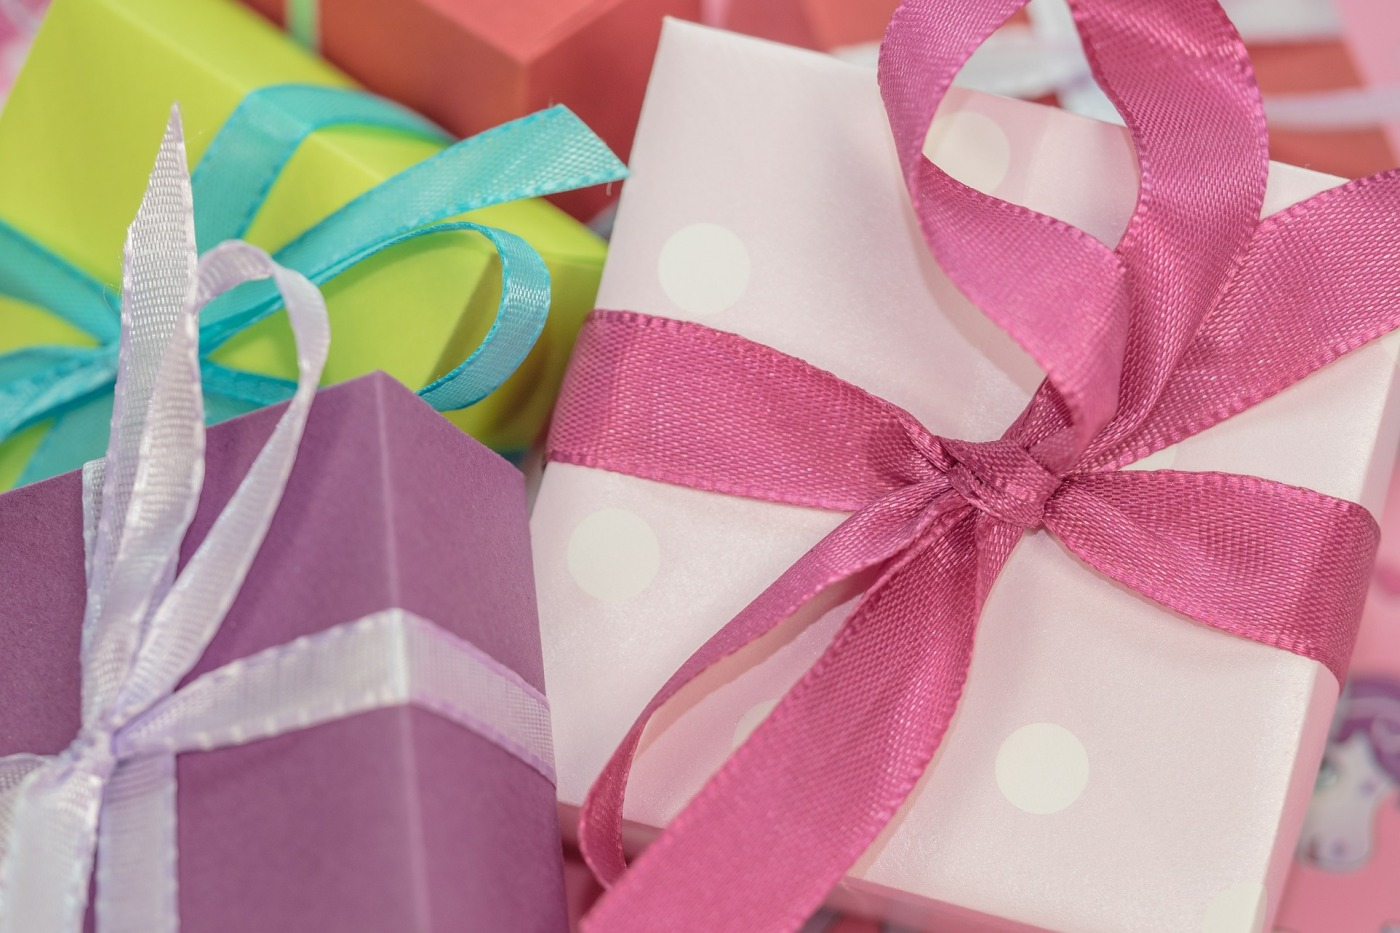 Photo of gift boxes